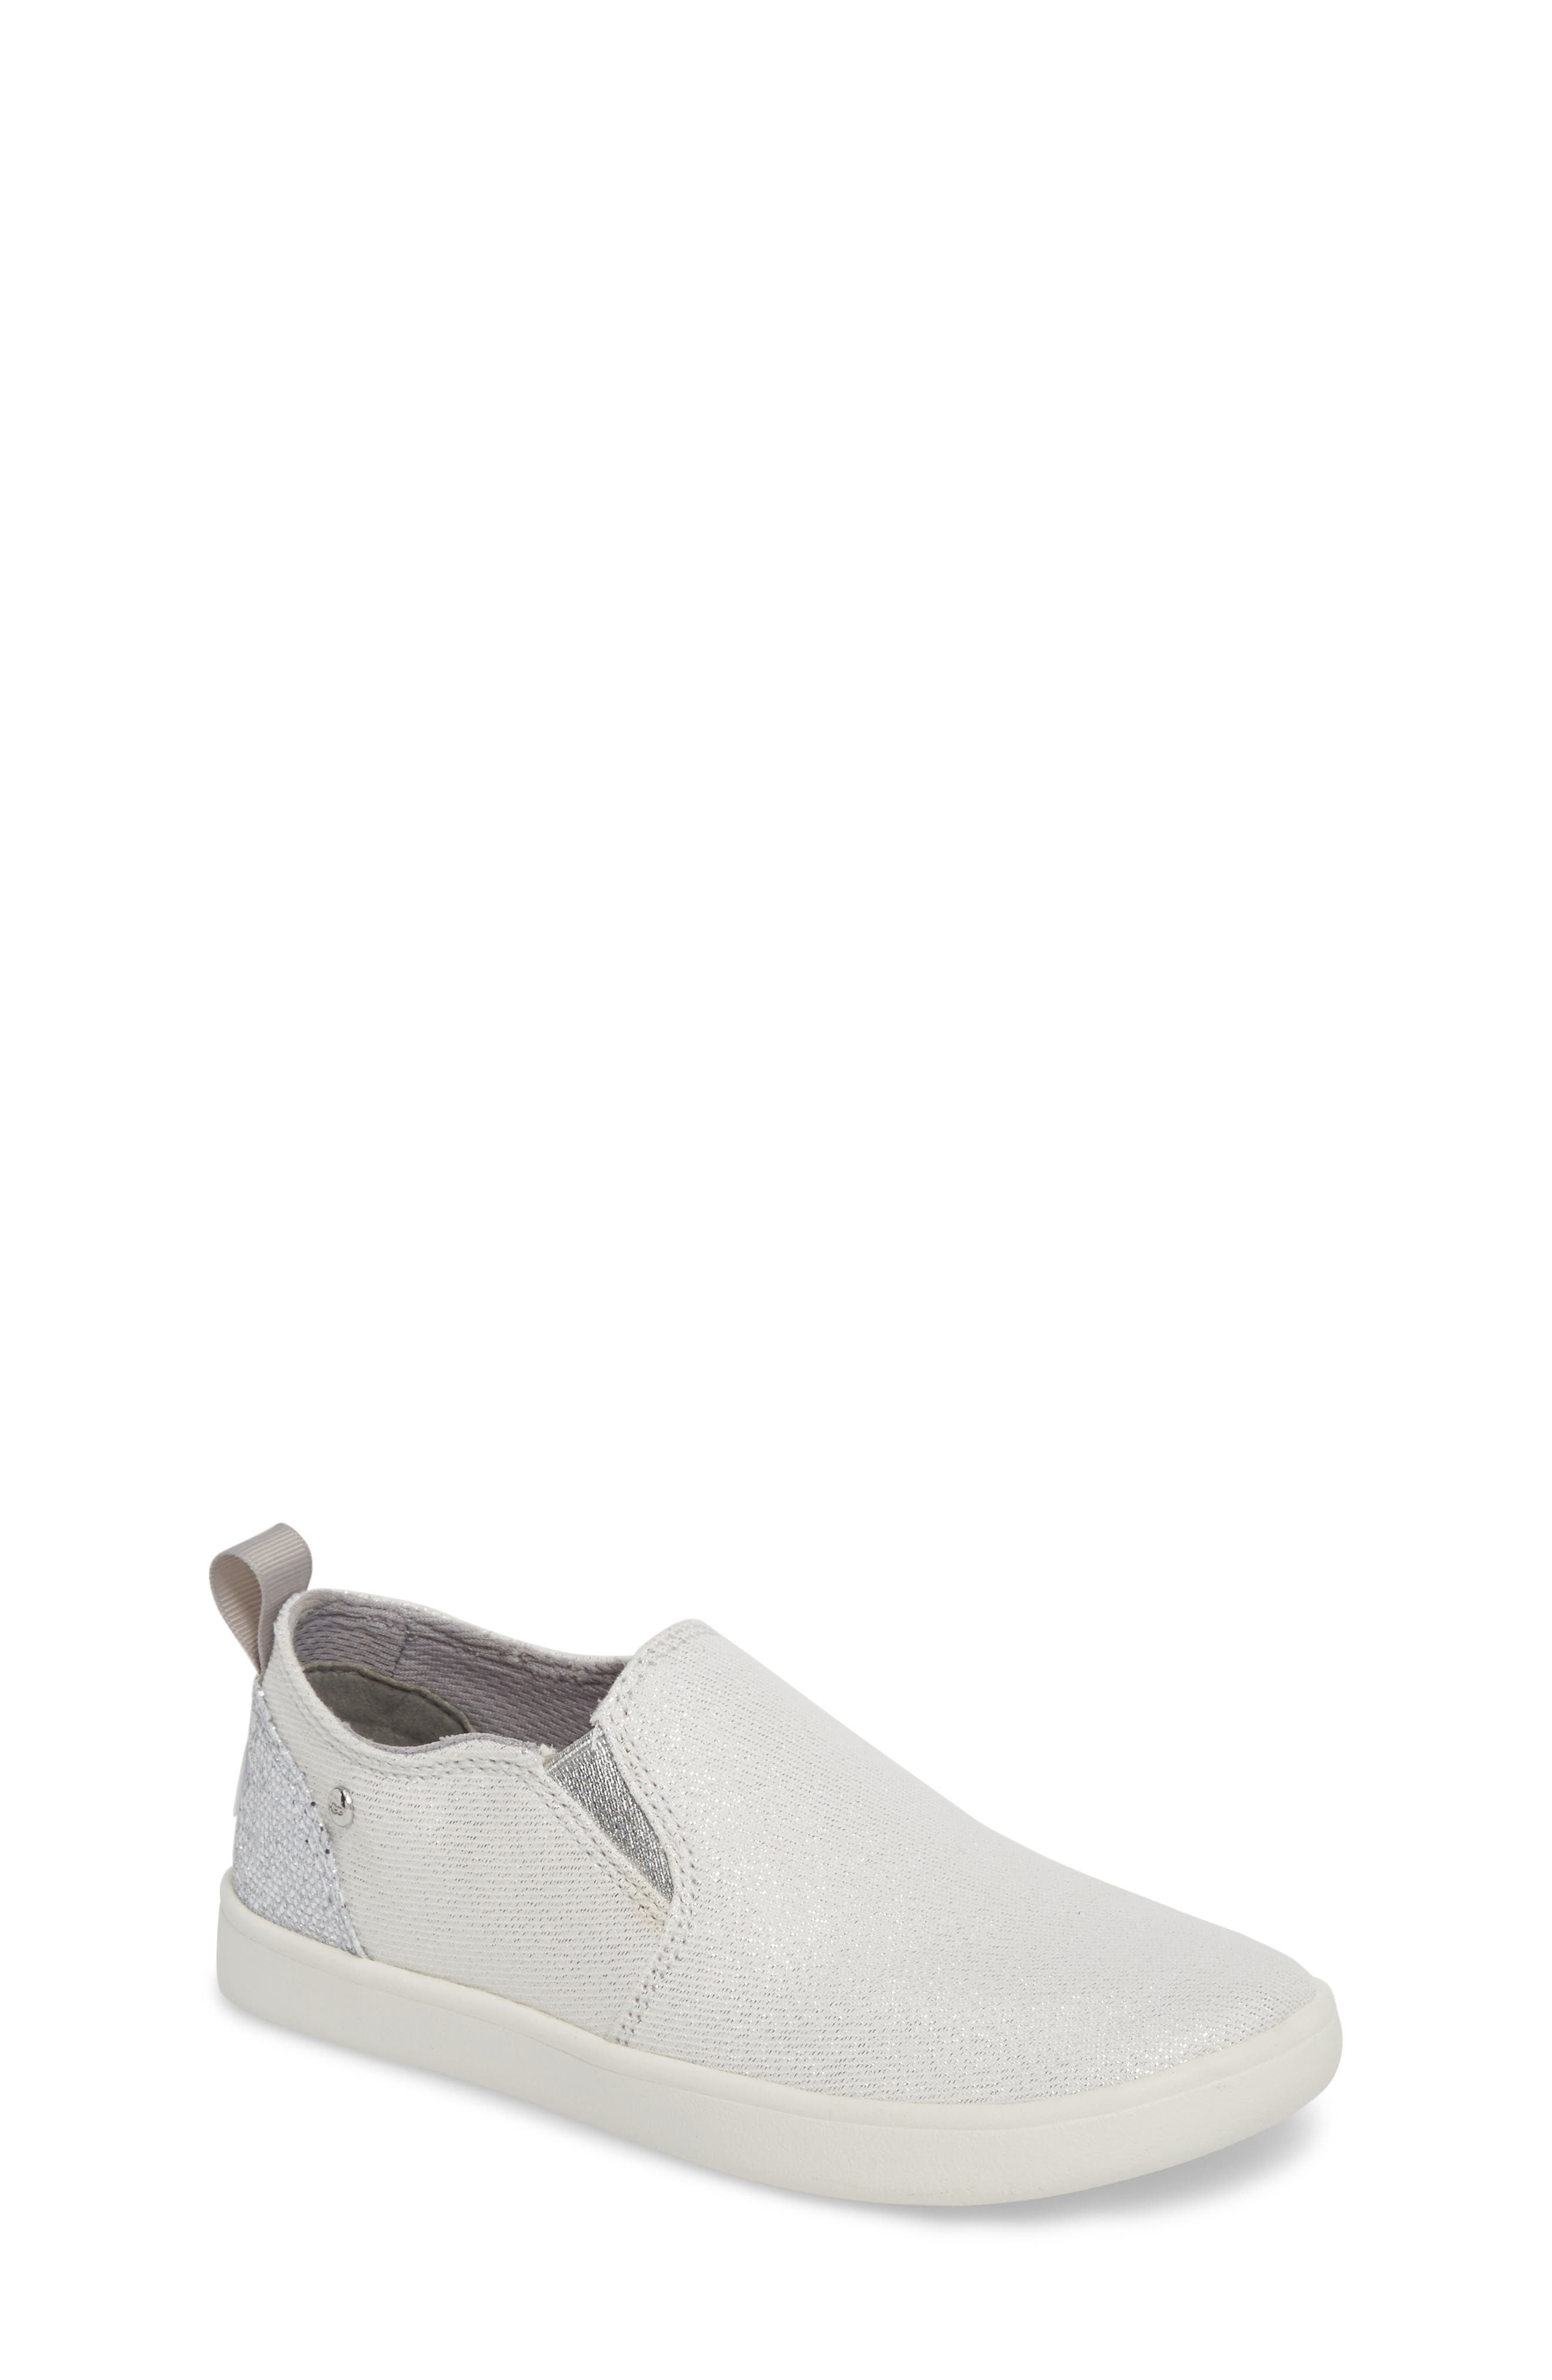 Gantry Sparkles Slip-On Sneaker,                         Main,                         color, Silver